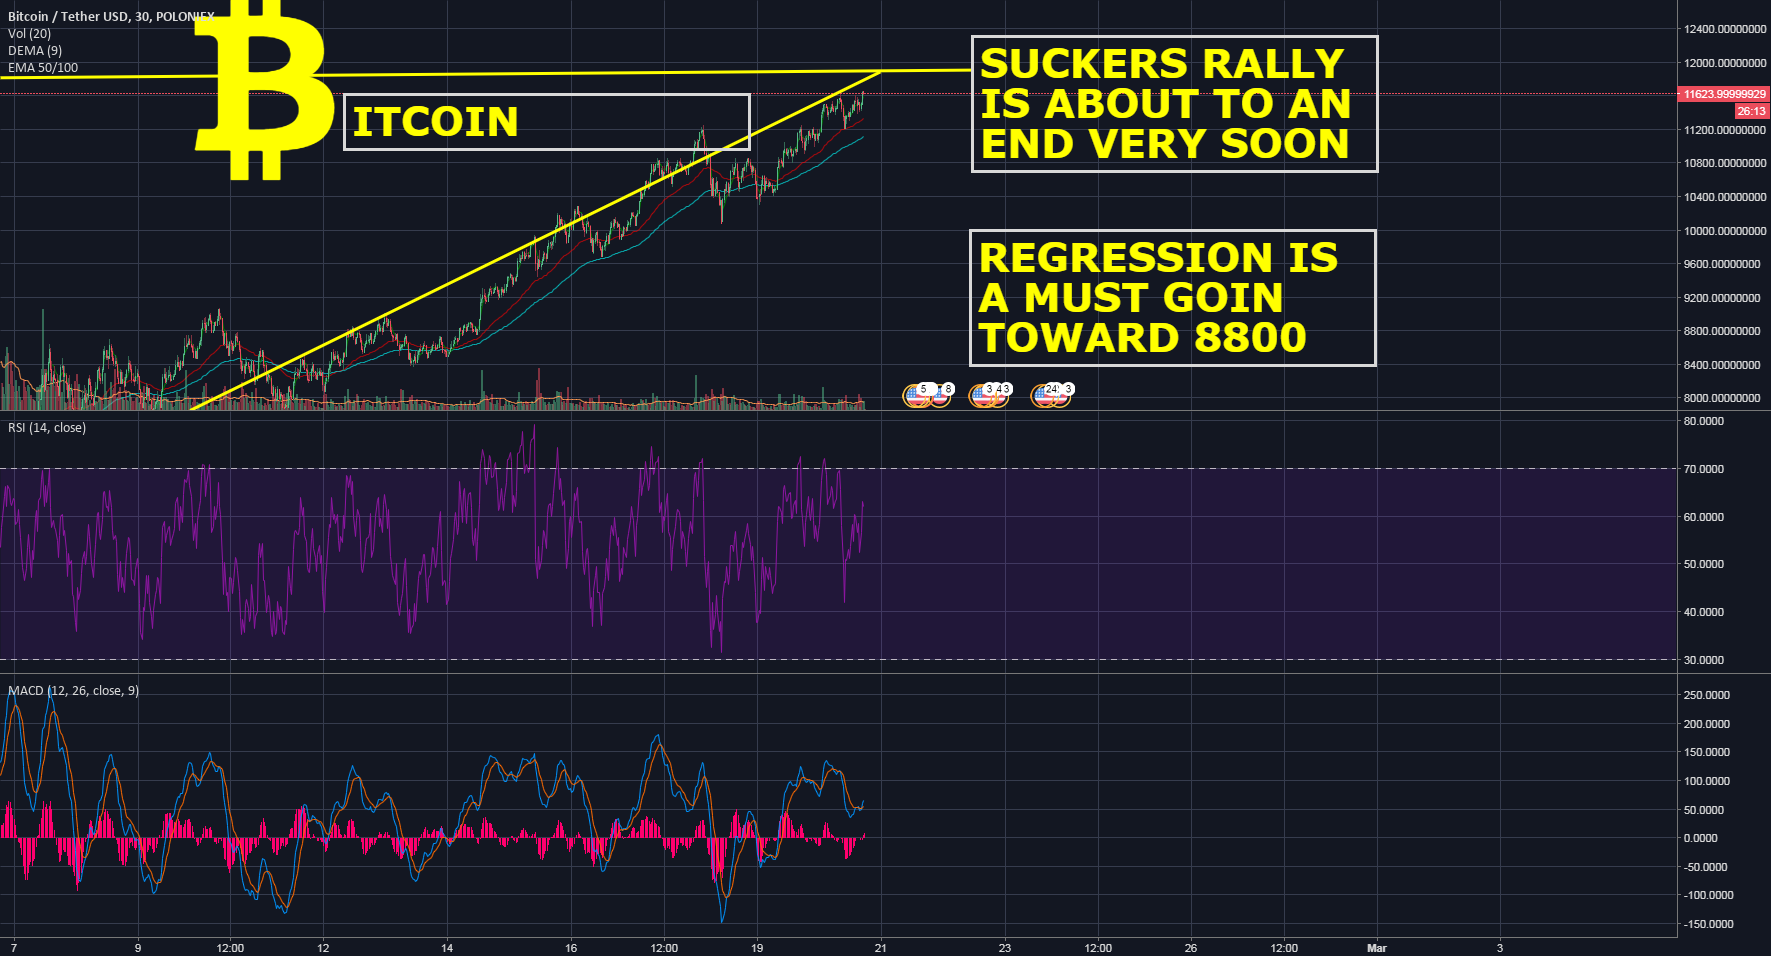 BITCOIN RED WARNING: DON'T BAIT STORIES ABOUT BEING BULLISH